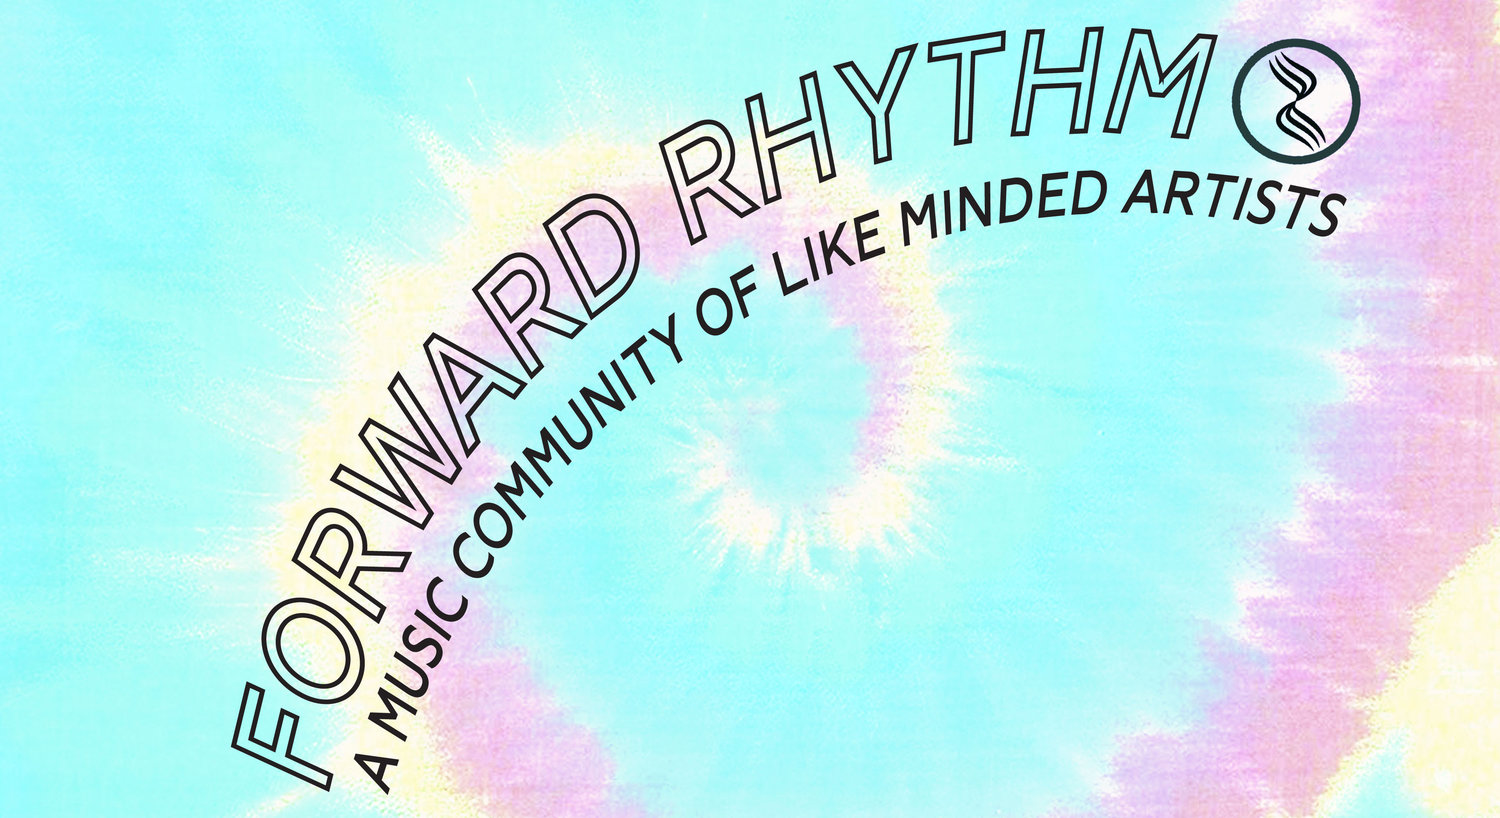 Forward Rhythm